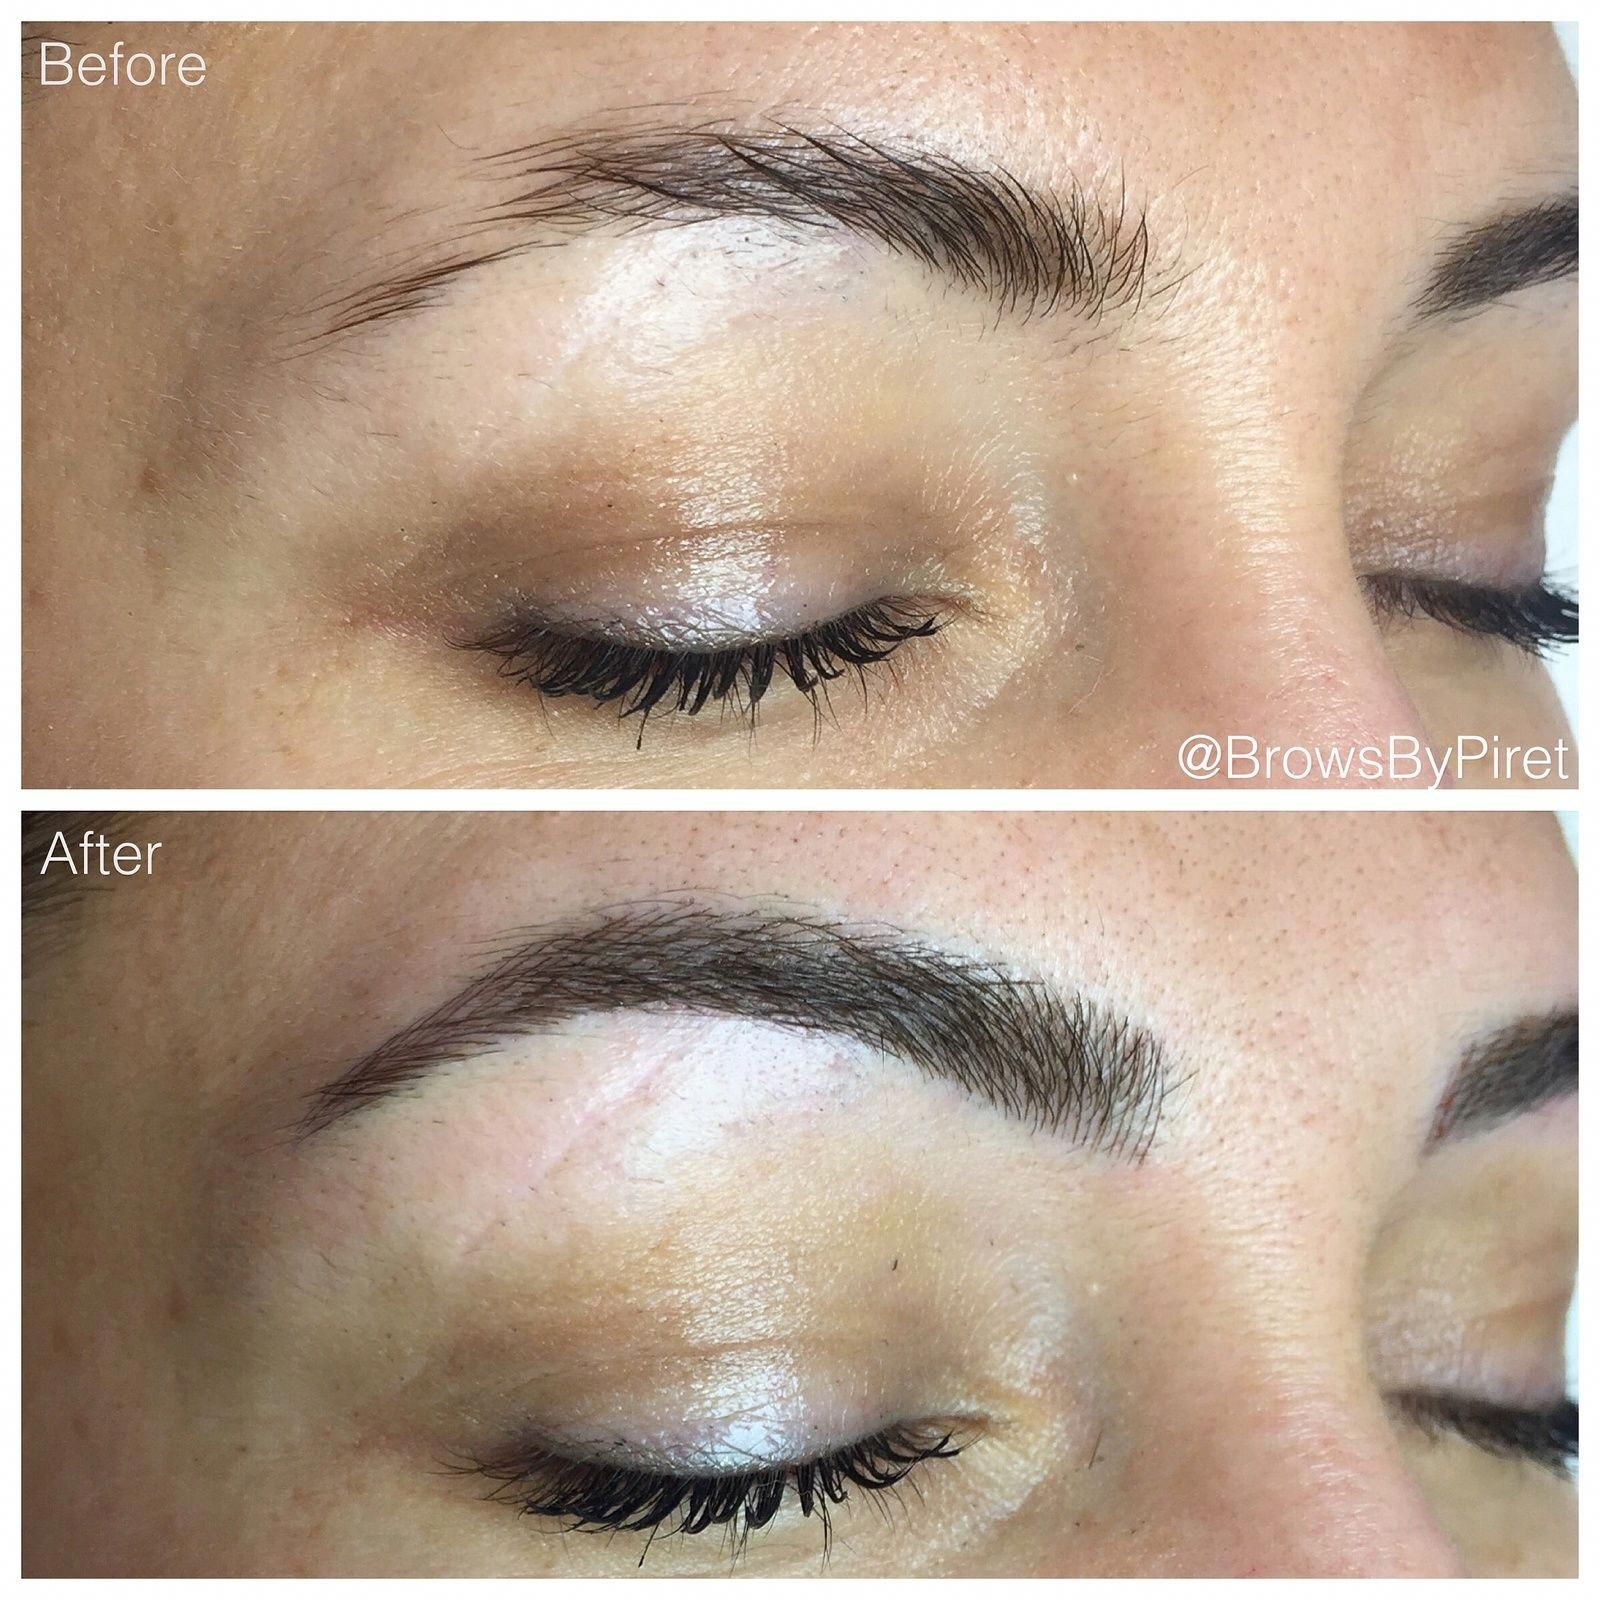 Eyebrow Doctor Eyebrow Tattoo Brows by Piret Before